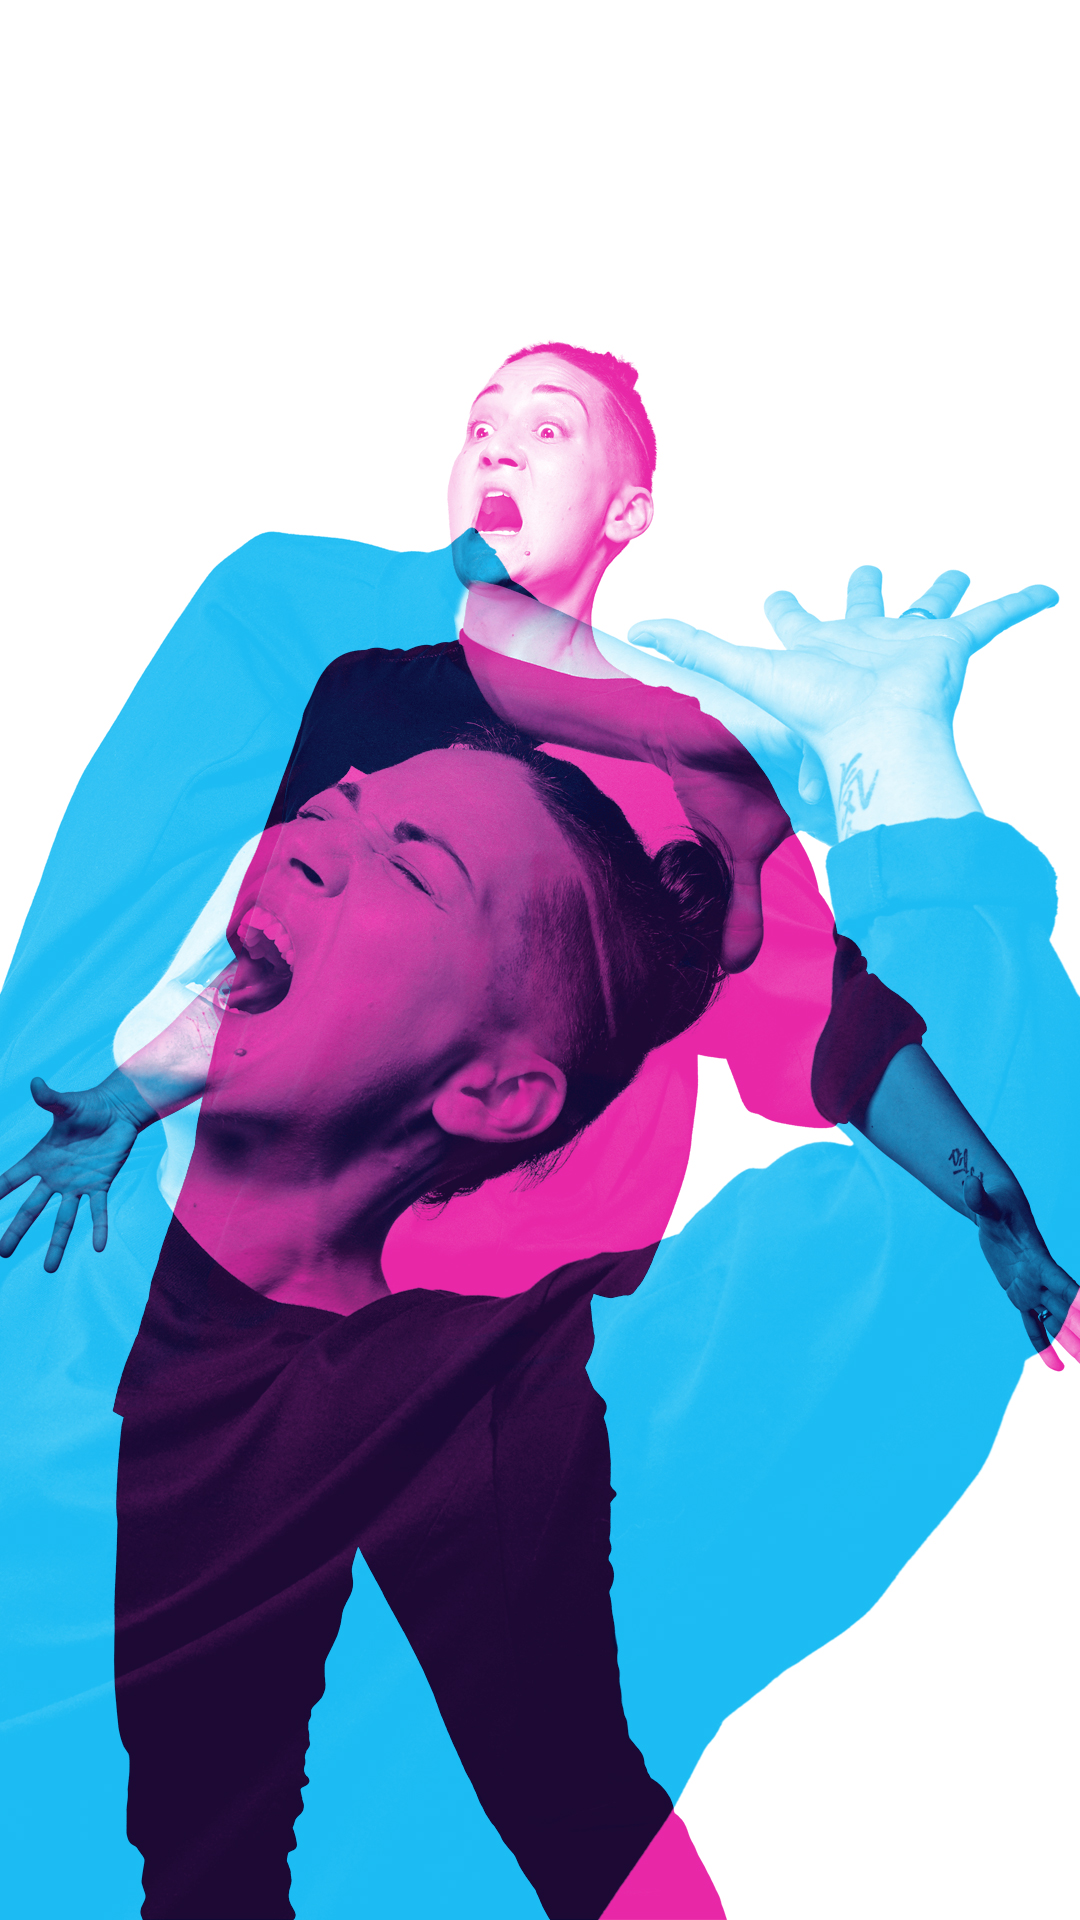 Two figures in dramatic poses, one blue, one magenta, are superimposed